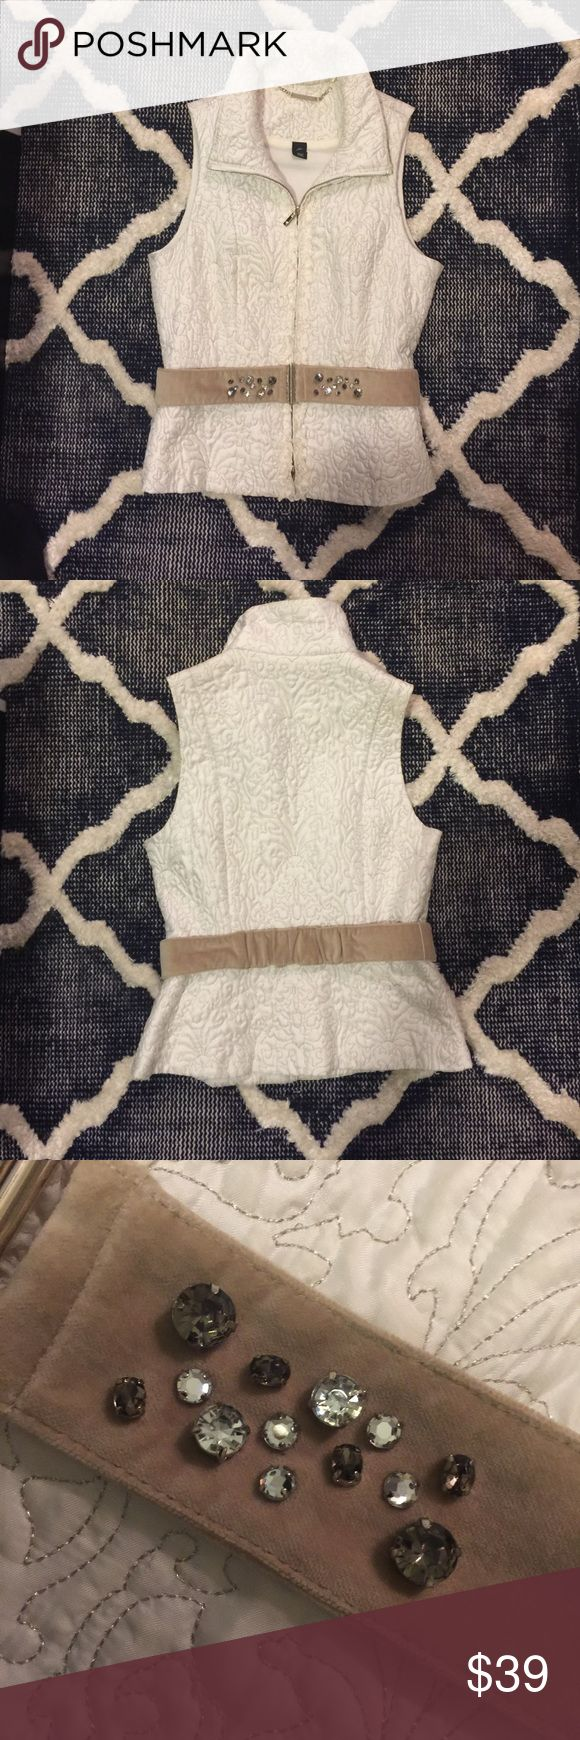 WHBM cream vest WHBM cream embroidered vest with detachable suede-like rhinestone belt. Pre-loved item with no noticeable signs of wear. White House Black Market Jackets & Coats Vests